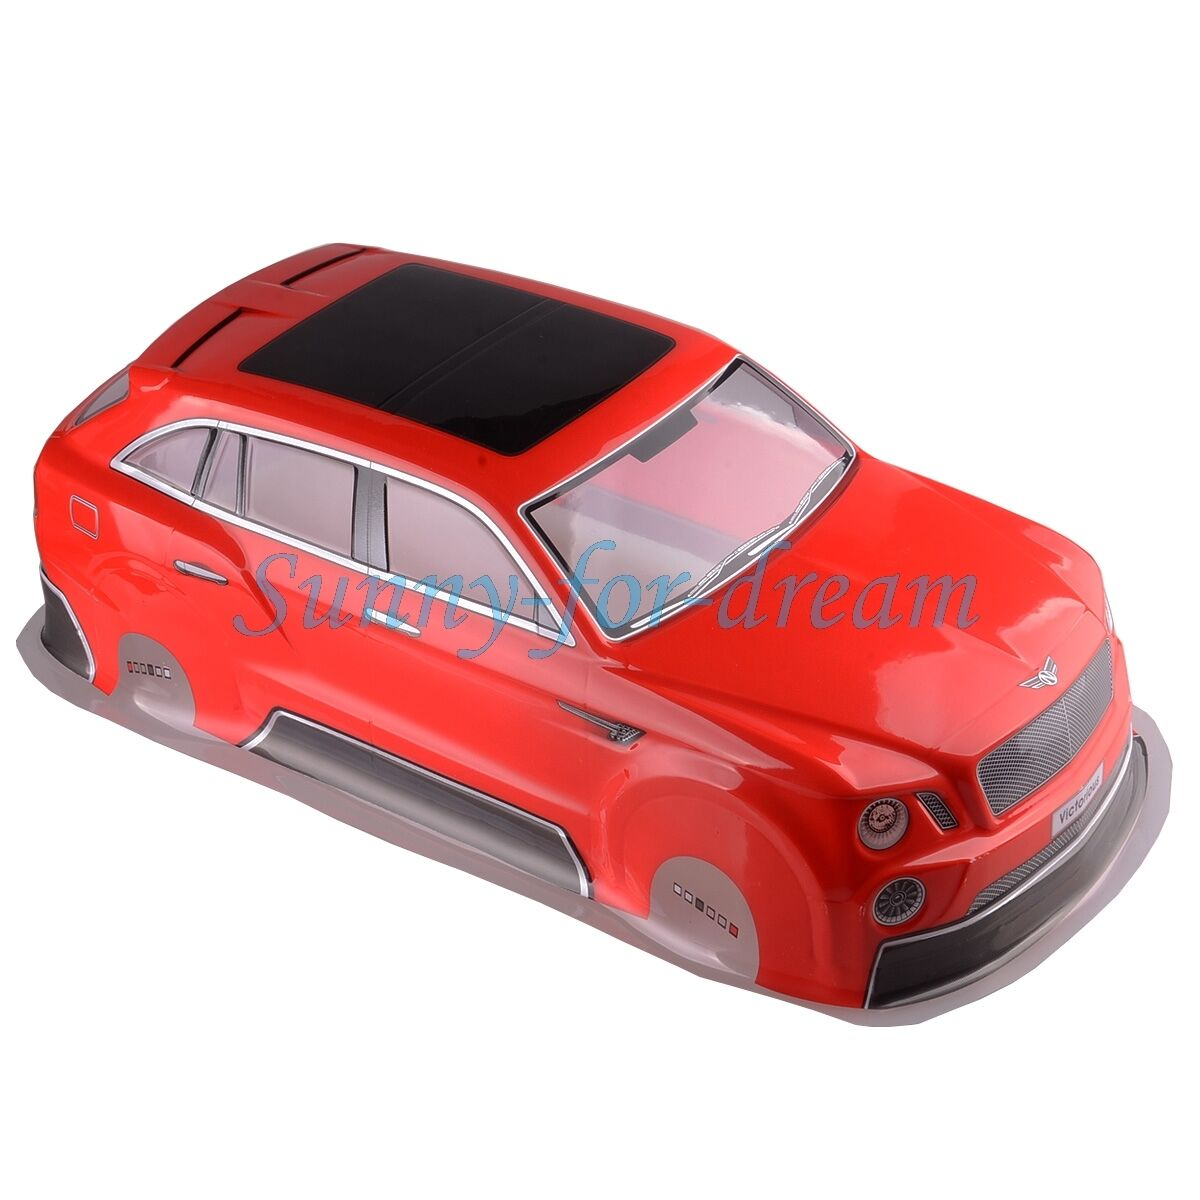 RC 1 10 10 10 On-Road Drift Racing CAR RED Painted PVC Body Shell 200MM HSP HIMOTO 46d5de